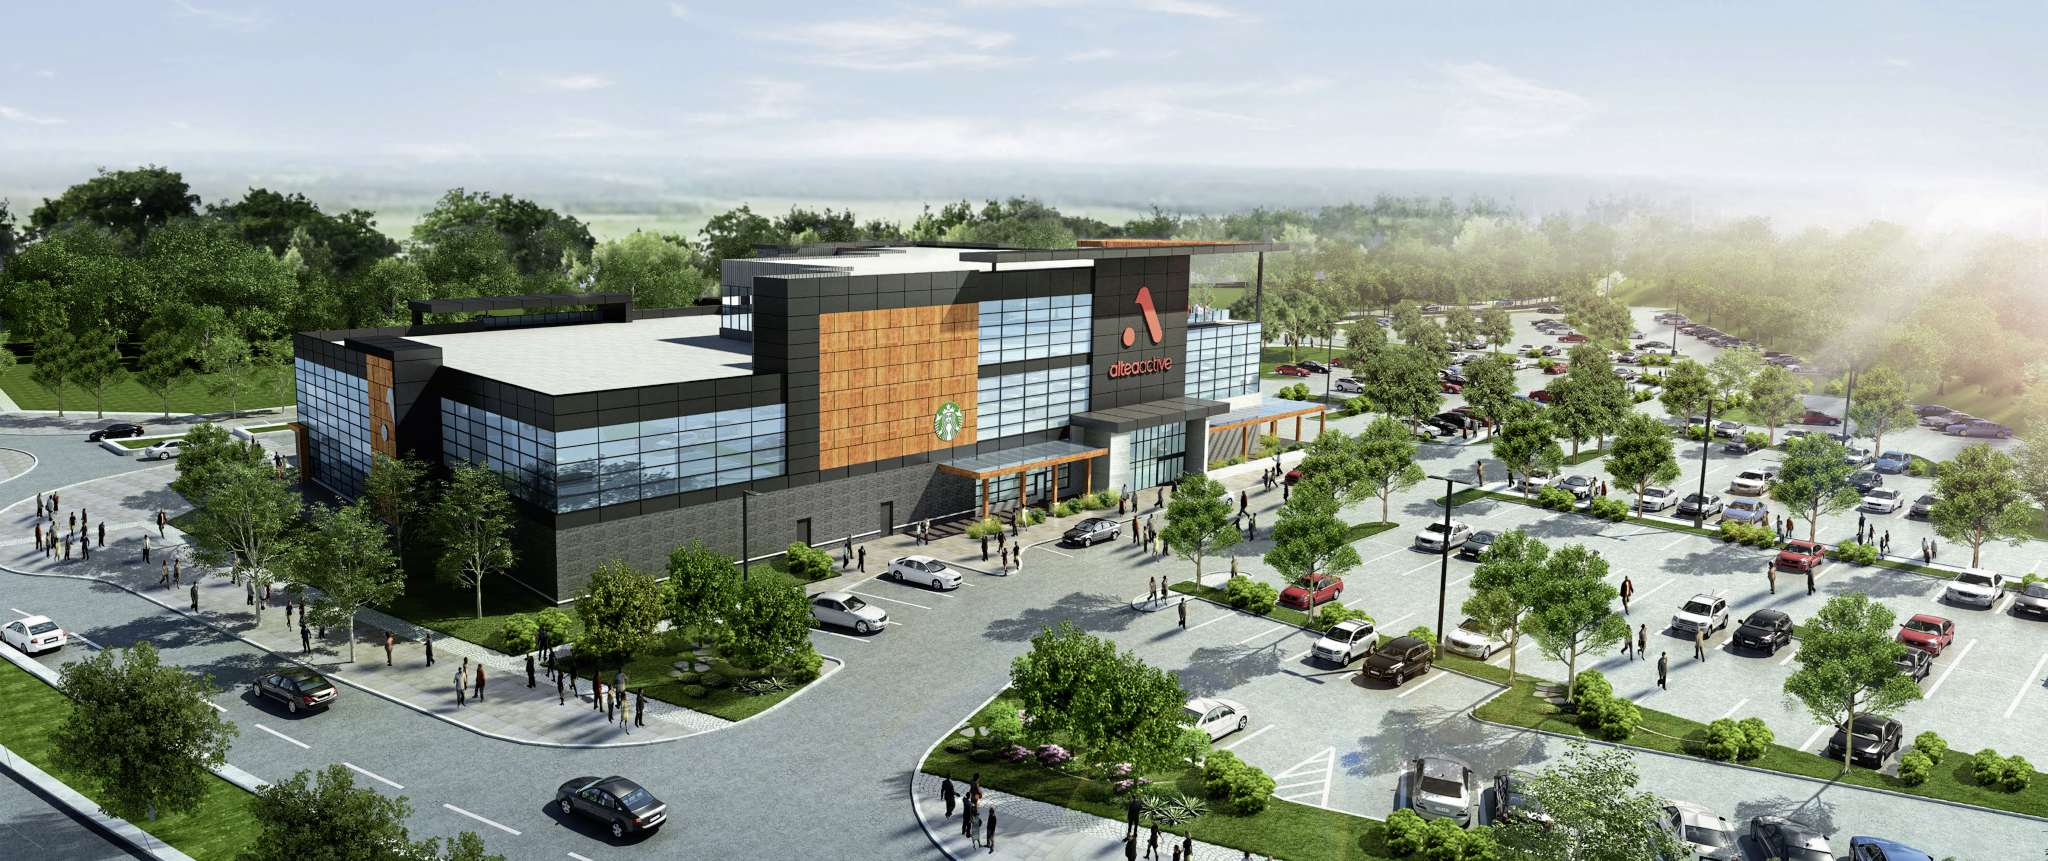 A new 80,000-square-foot fitness facility by Altea Active is scheduled to open in Bridgwater Centre in late 2019. The new club will have two pools (one exclusively for women), a Himalayan salt inhalation room, hot yoga studio, boutique fitness classes, childminding, ninja obstacle course, and more.